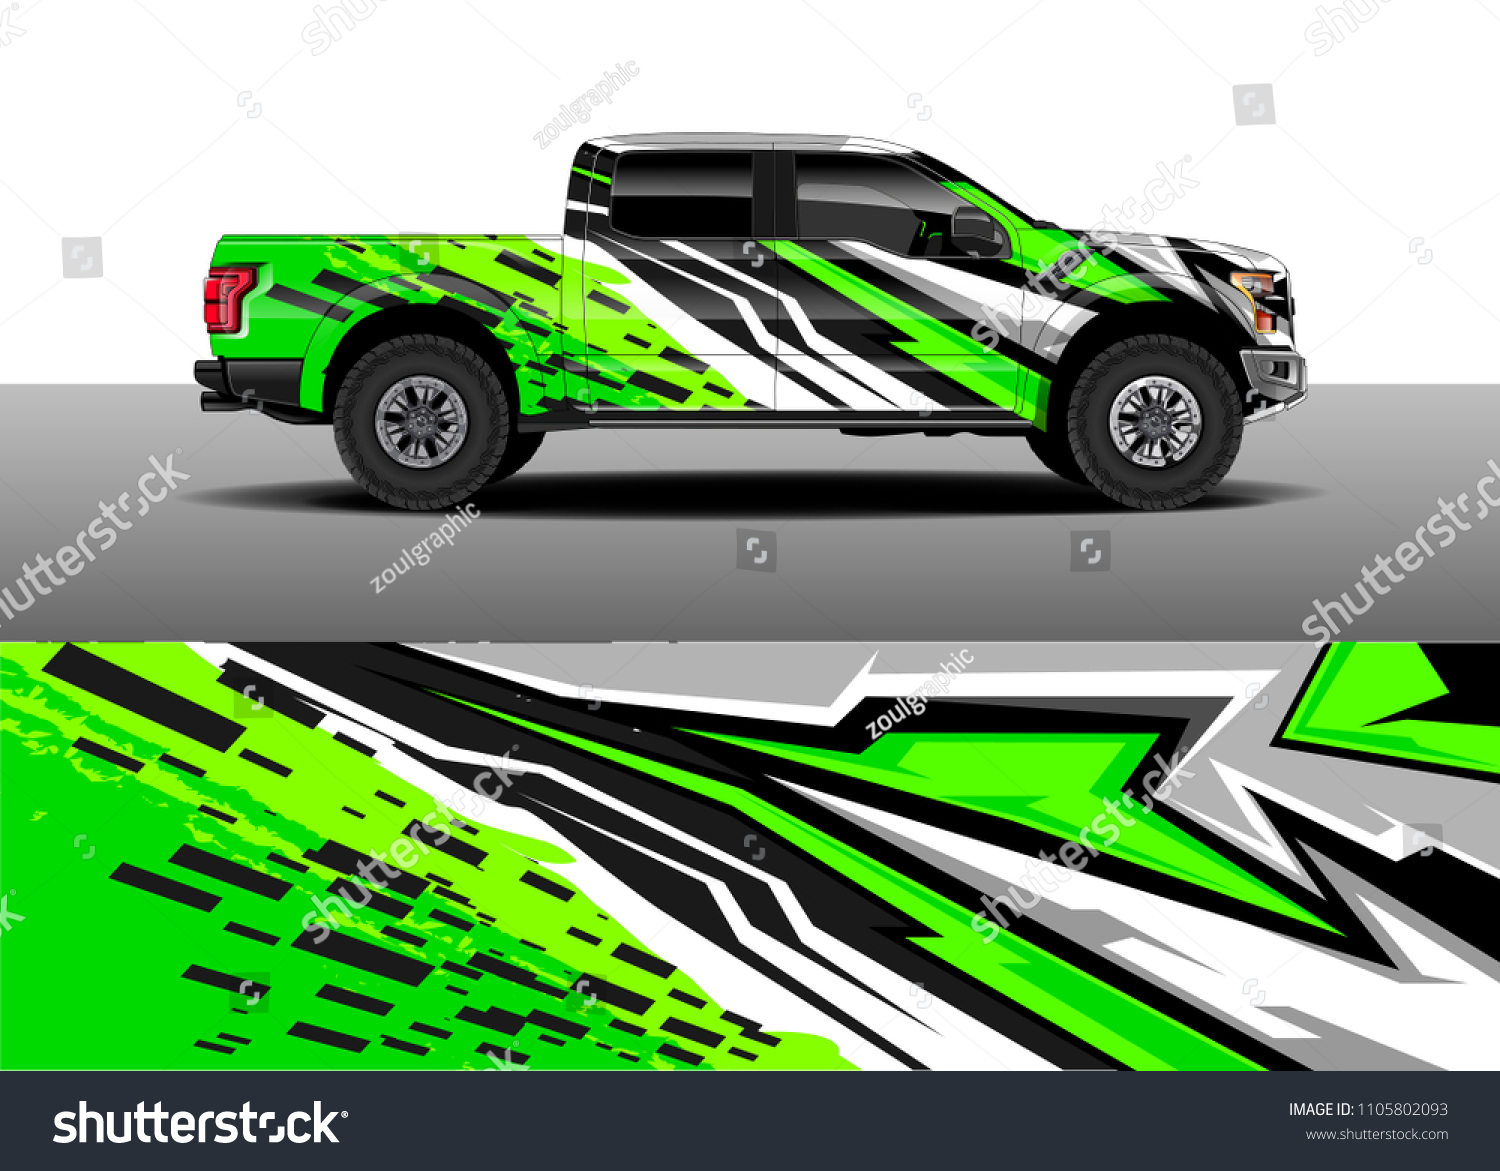 Truck decal vector graphic abstract racing designs for vehicle sticker vinyl wrap